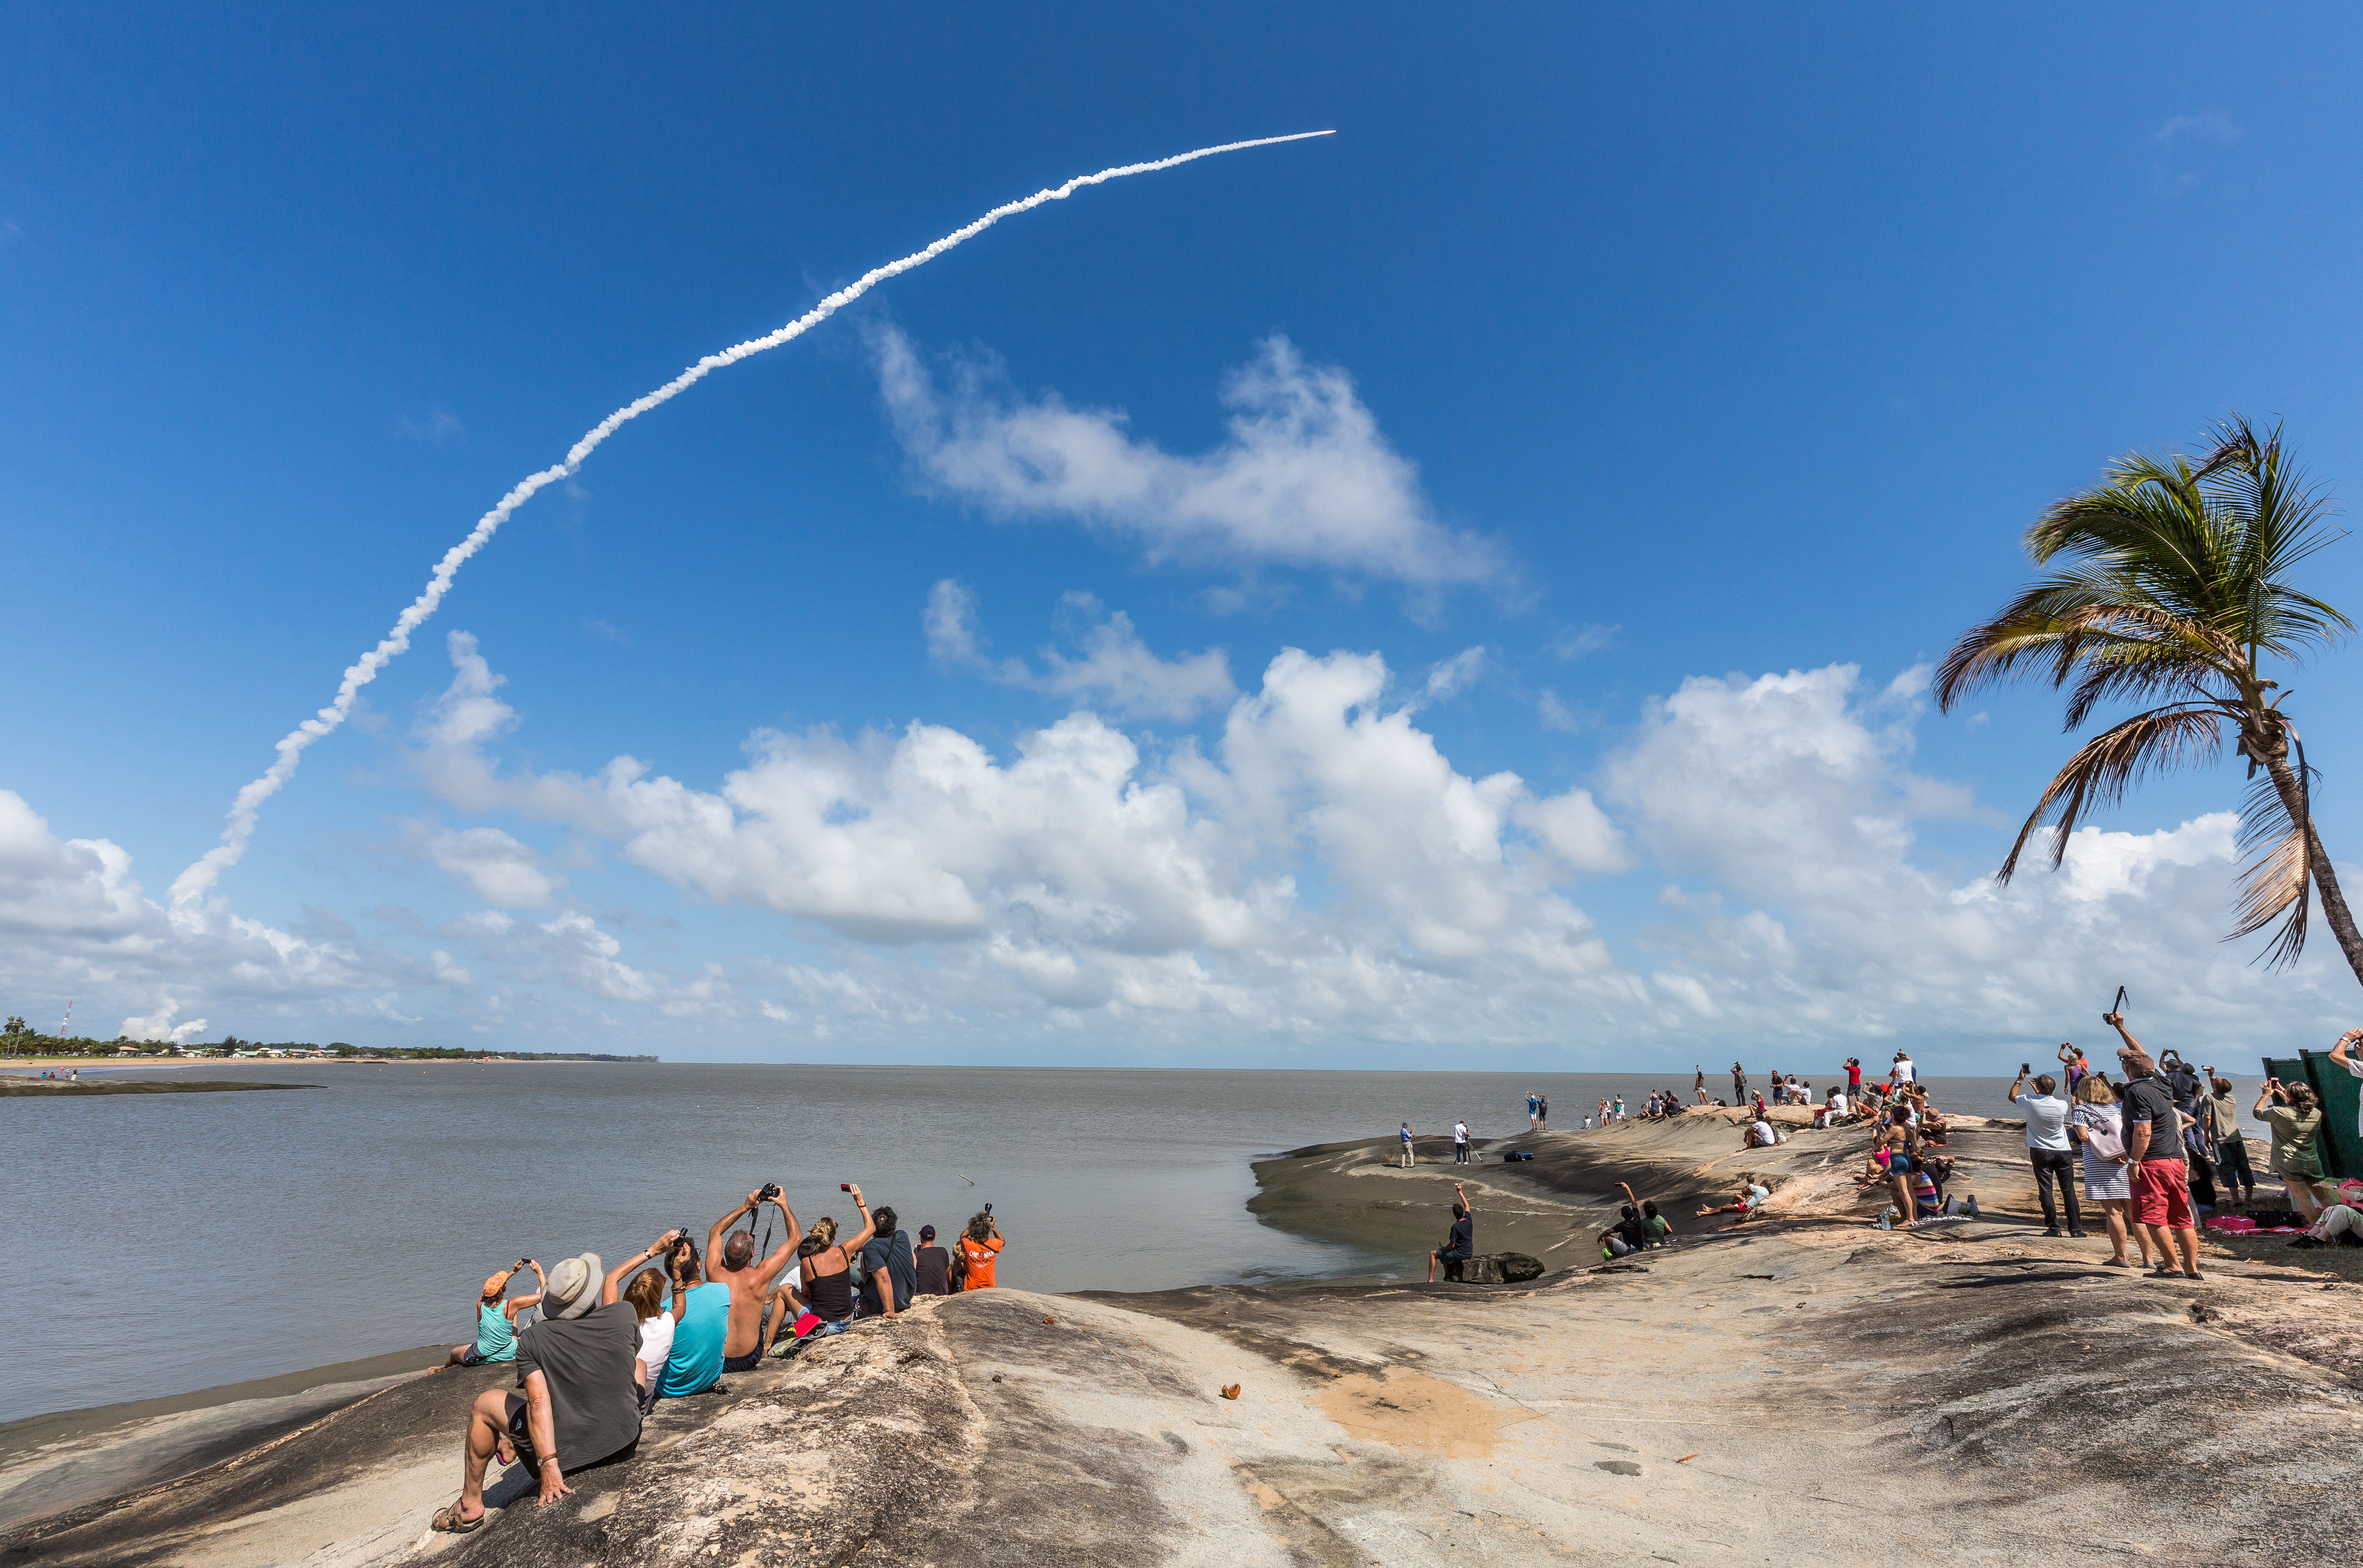 People take photos as an Ariane 5 space rocket with a payload of four Galileo satellites lifts off from ESA's European Spaceport in Kourou, French Guiana, on November 17, 2016